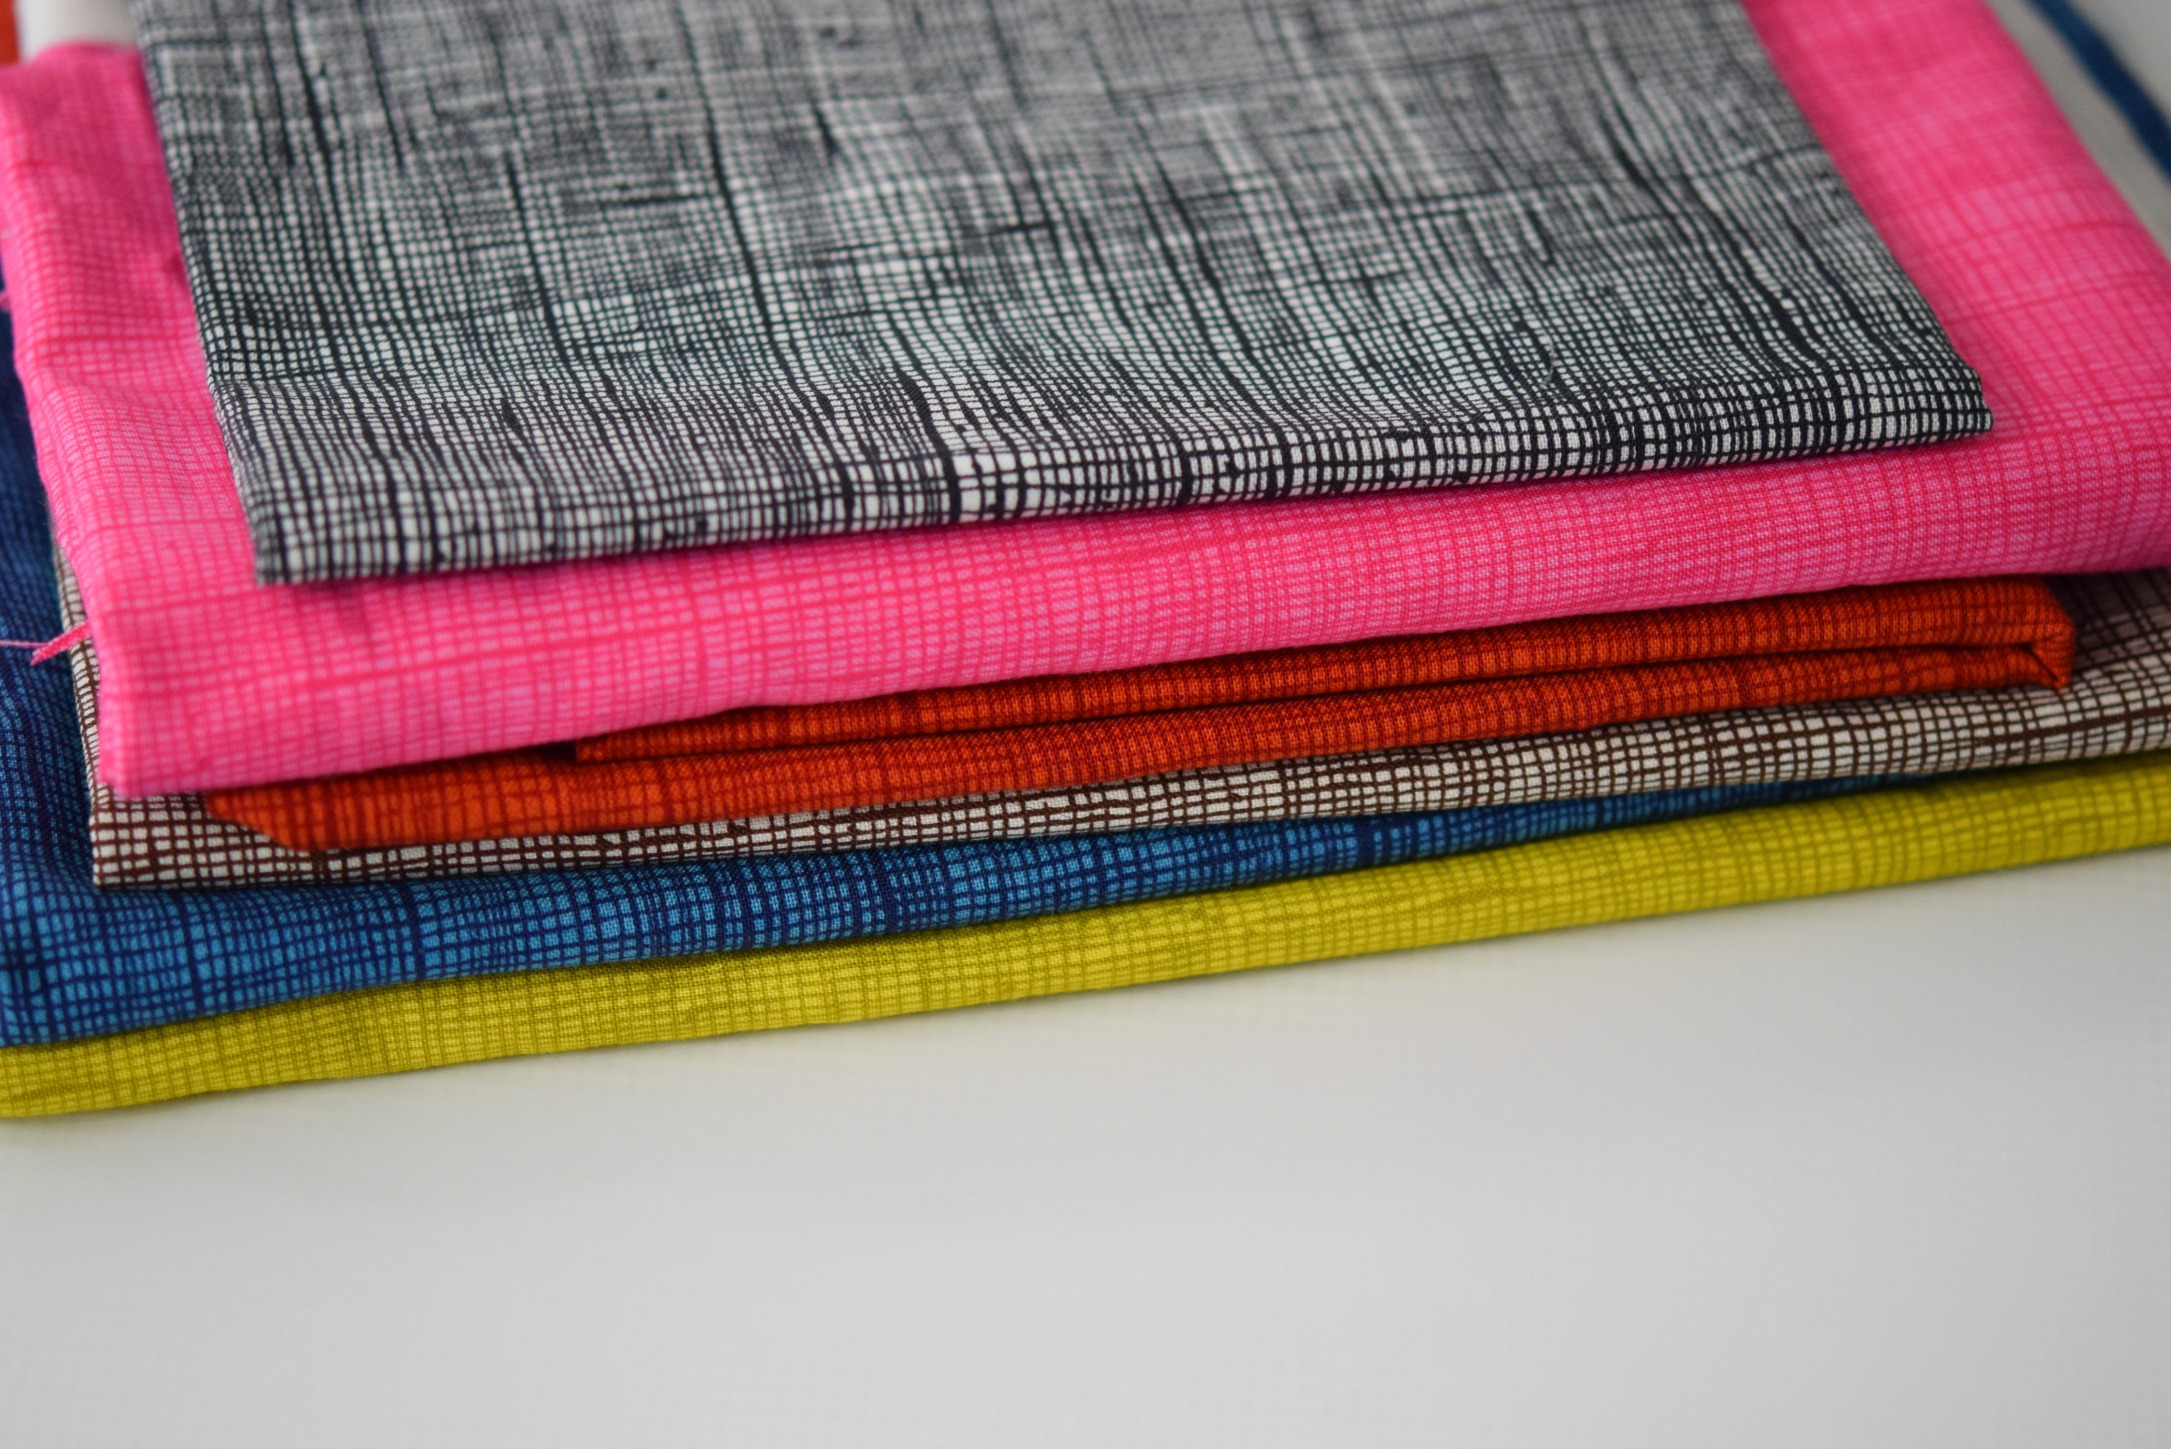 Pile of Heath Fabric 2-615.jpg